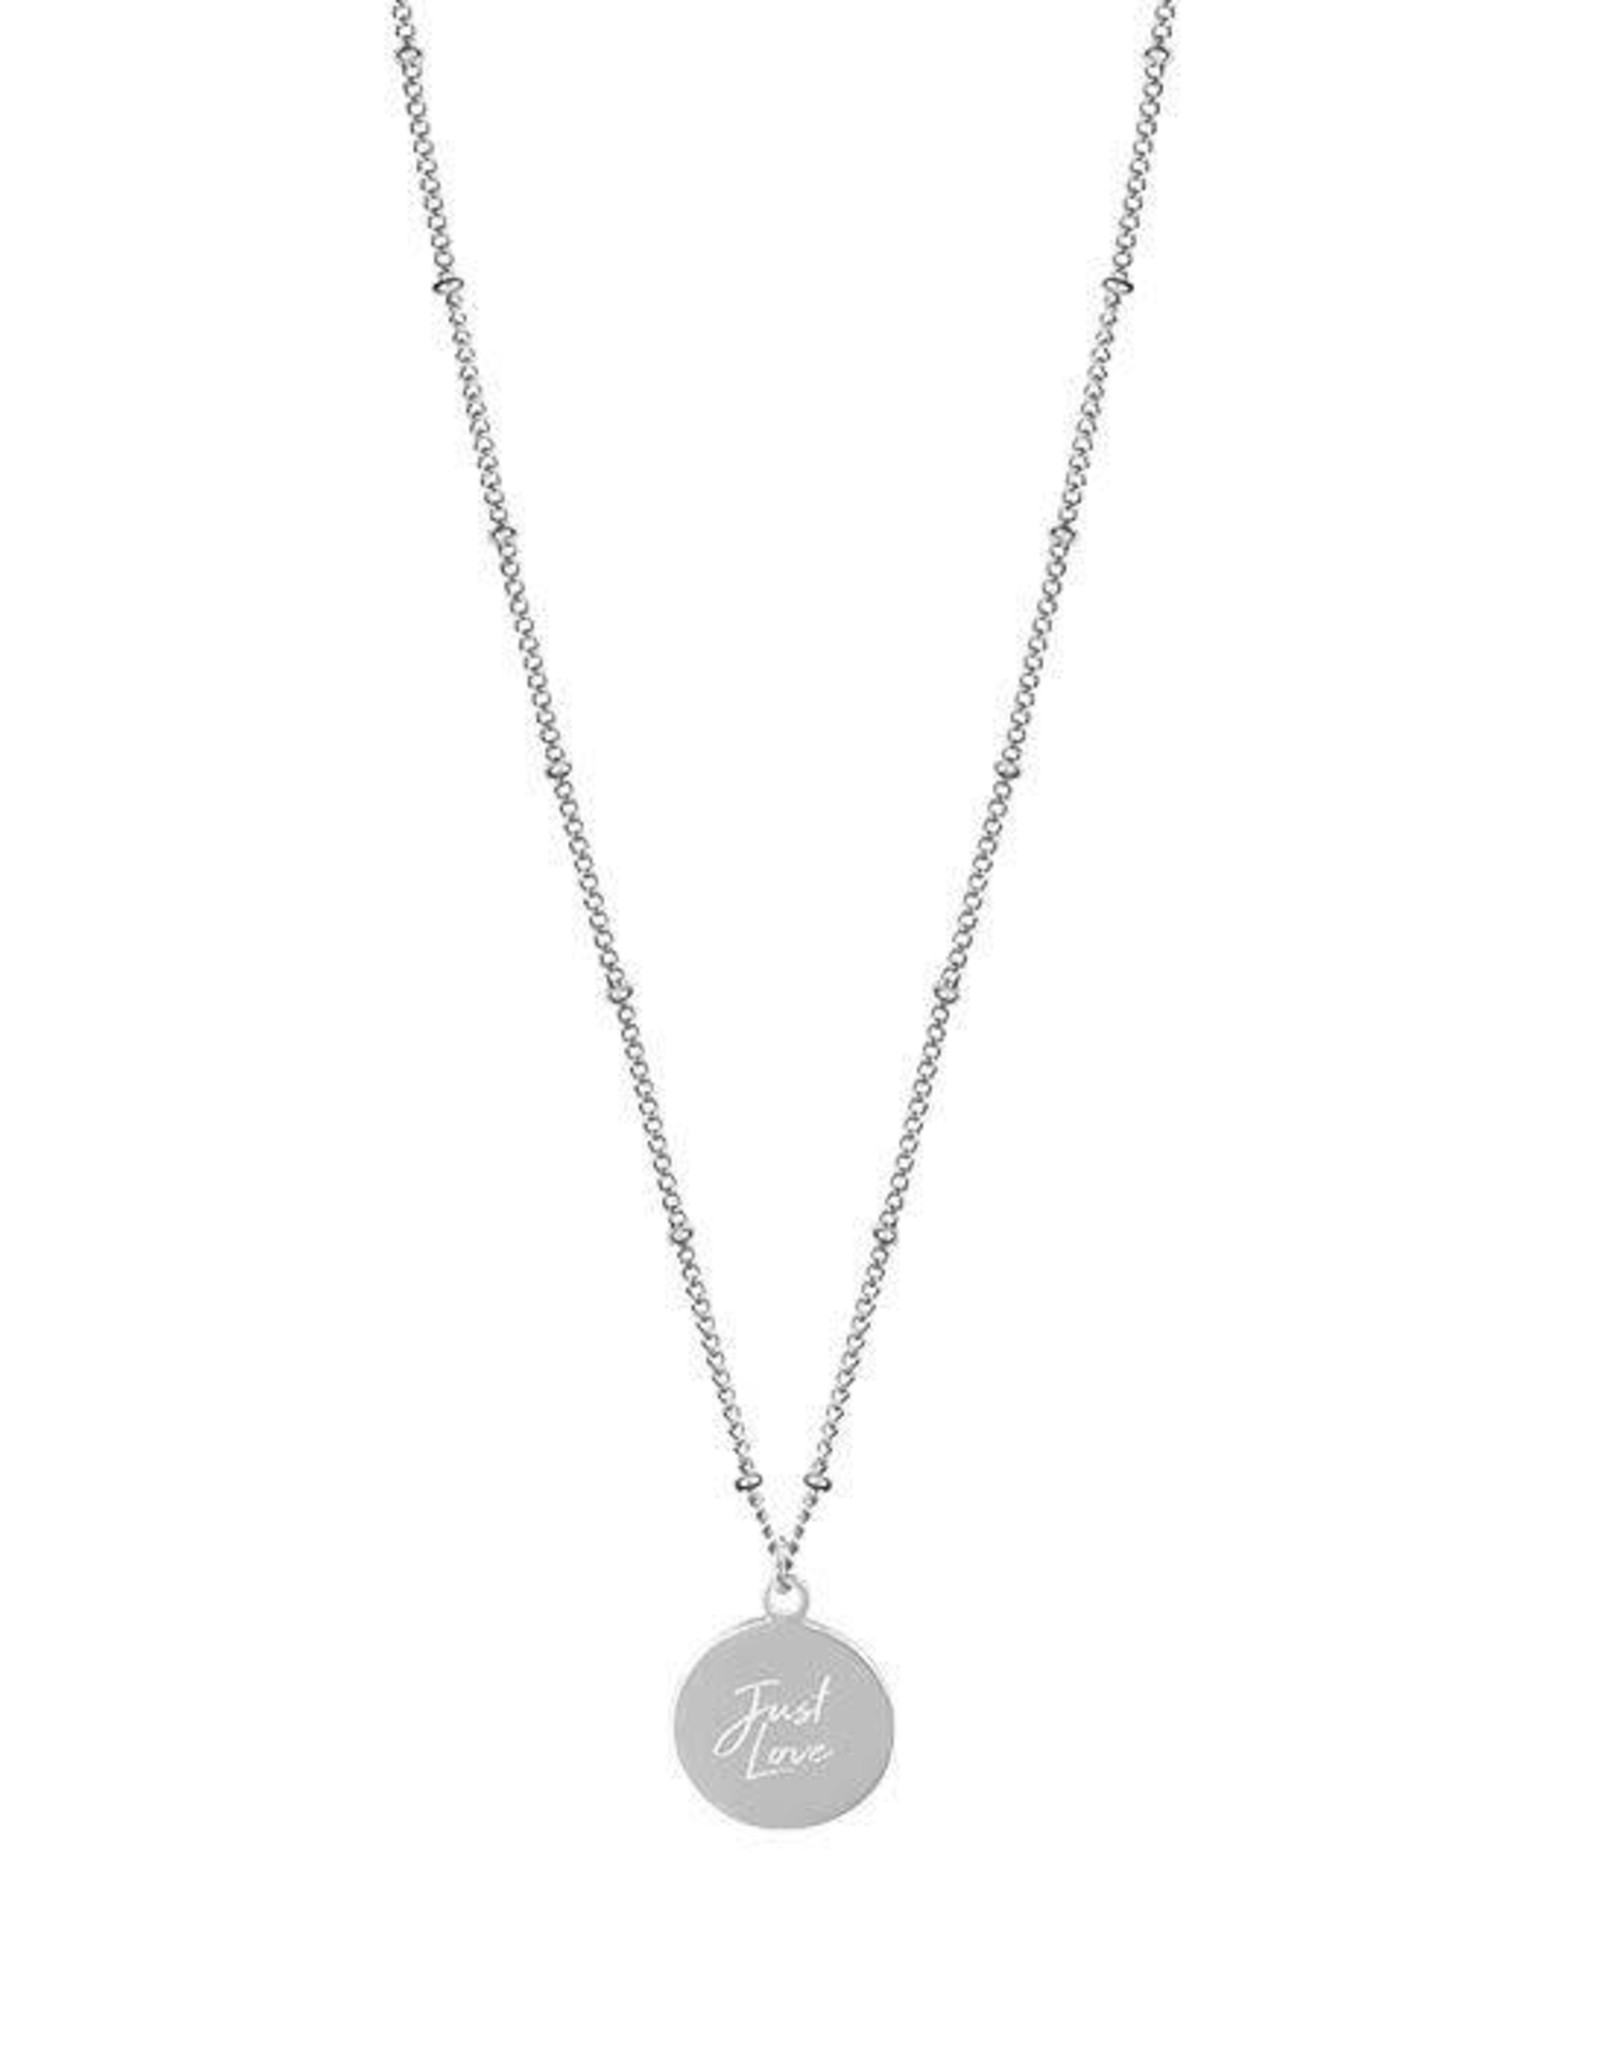 My Jewelry Ketting dots charm 'Just Love'-silver